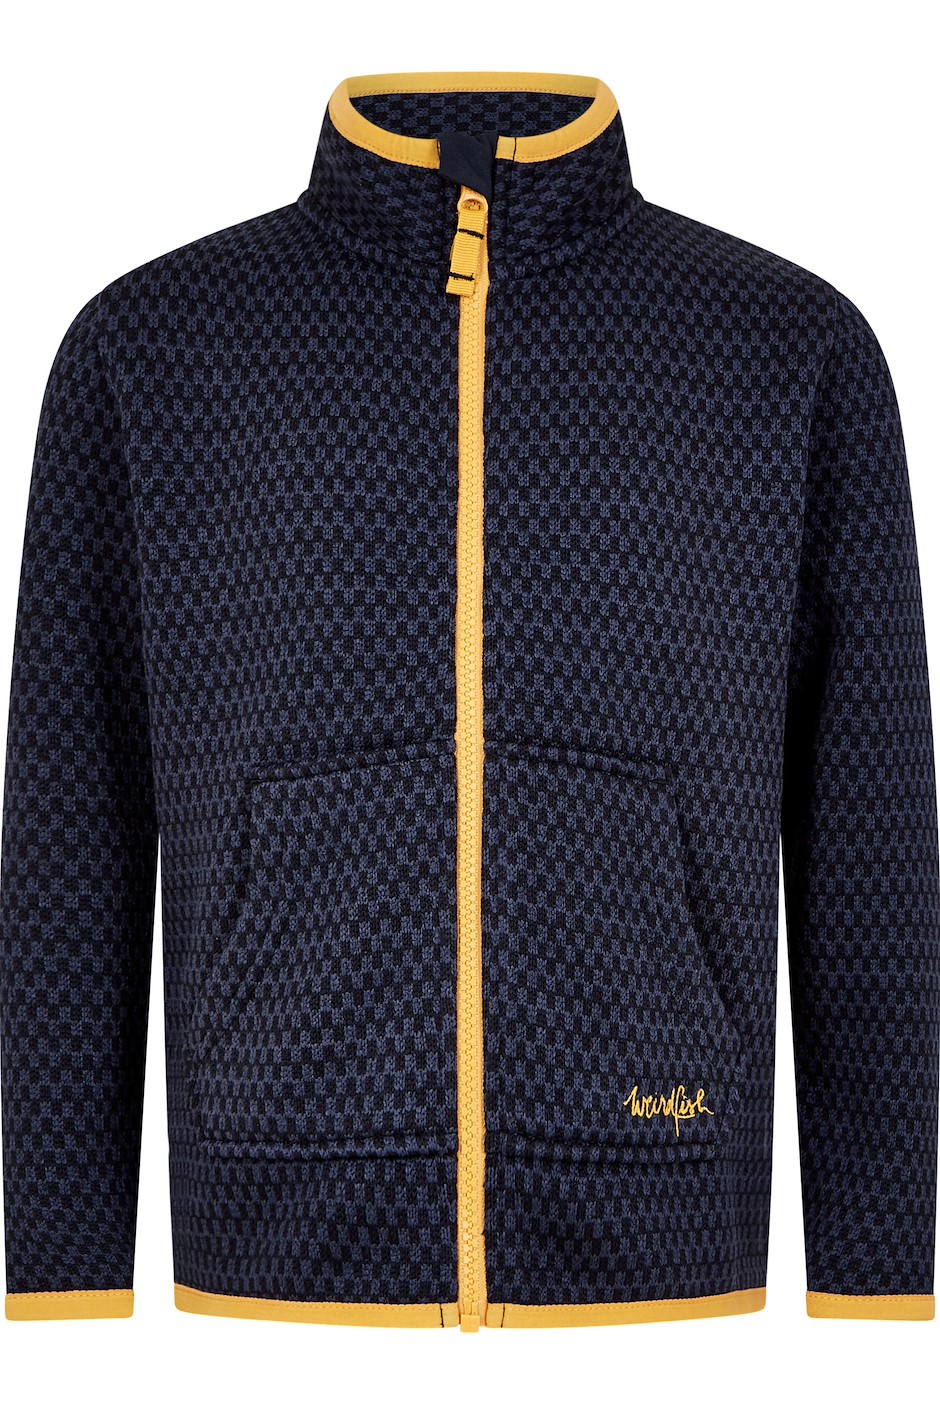 Warble Full Zip Textured Fleece Dark Navy (Size Age 14)